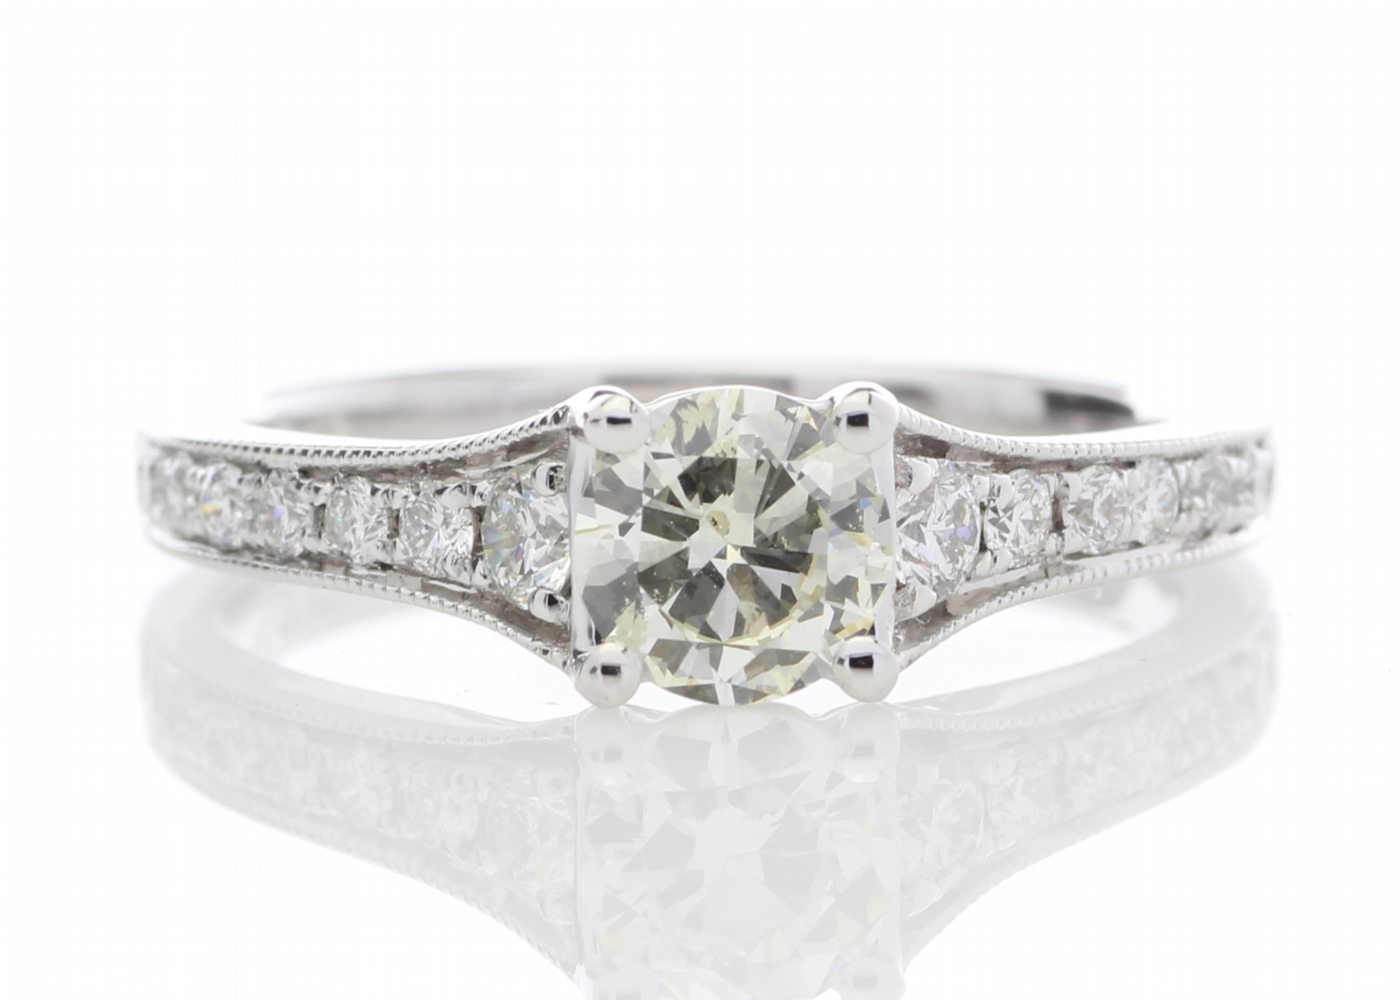 18ct White Gold Diamond Ring With Stone Set Shoulders 0.80 Carats